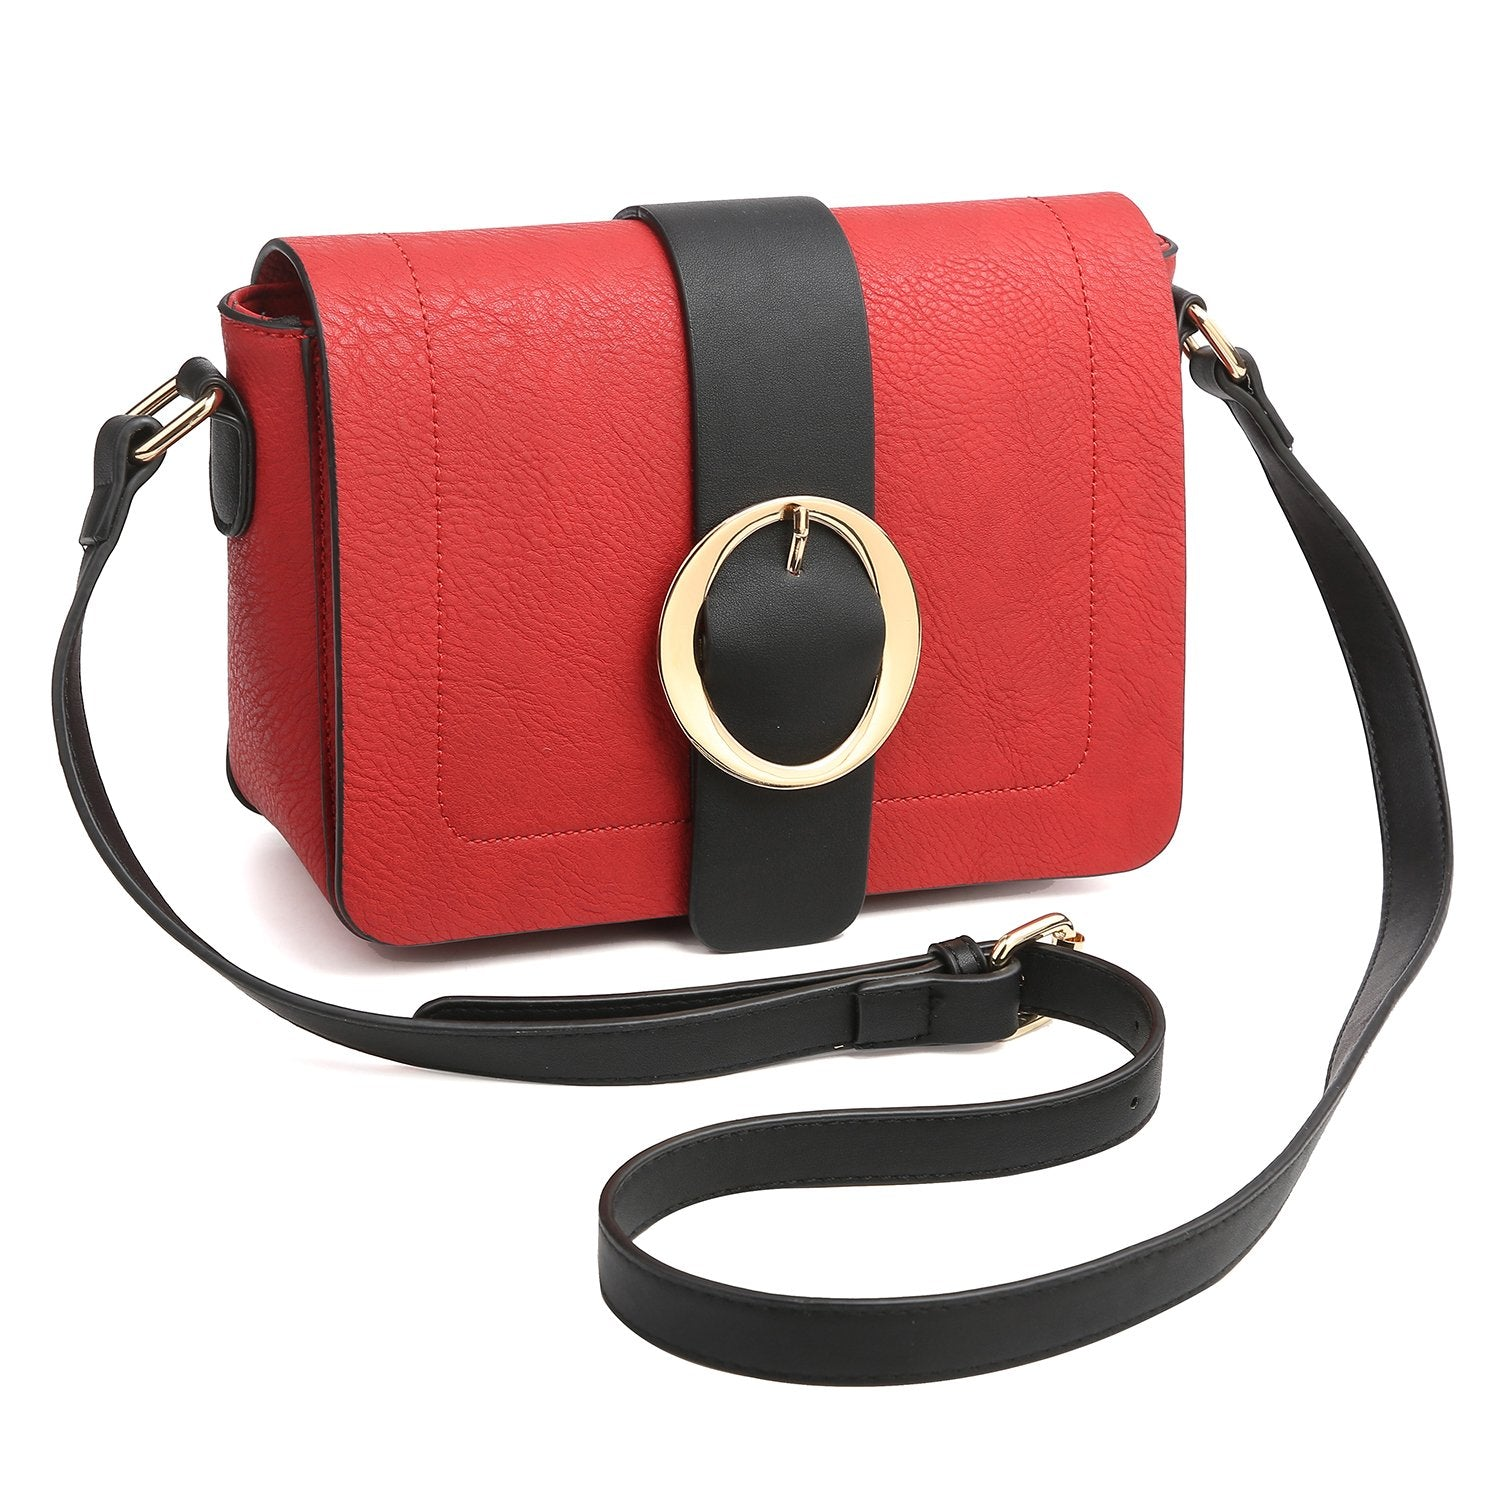 Concise Style Buckle Gold-Tone Ring Crossbody Bag